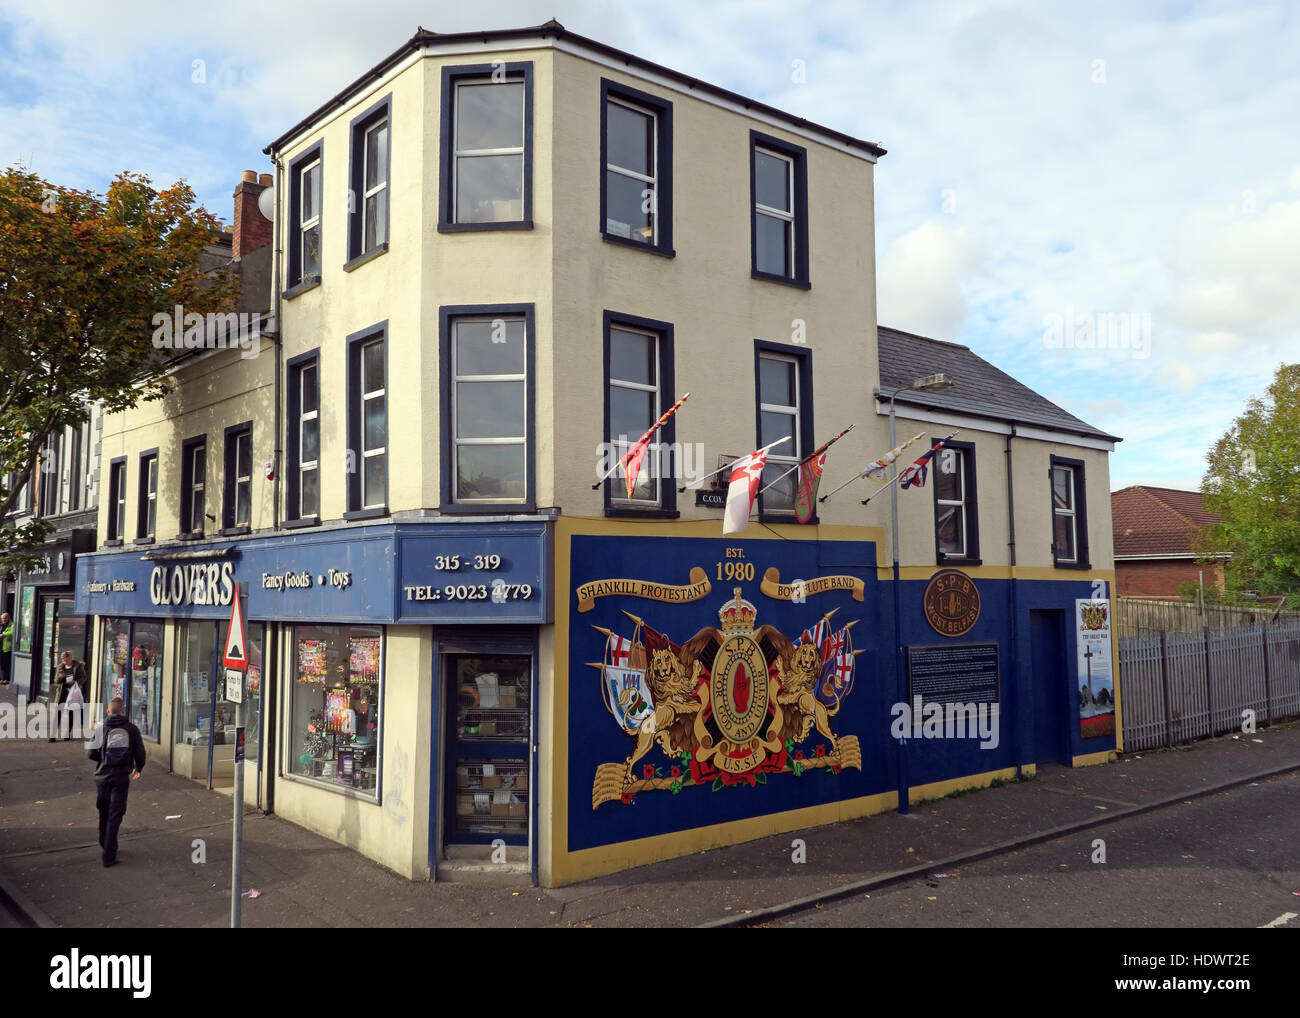 Red hand,Ulster,memorial,UFF,Unionist,mural,off,Shankill,rd,Road,West Belfast,Northern Ireland,UK,Ireland,fighter,fighting,gable,end,Longkesh,USSF,gable end,Shankill Protestant Boys,GoTonySmith,@HotpixUK,Tony,Smith,UK,GB,Great,Britain,United,Kingdom,Irish,British,Ireland,problem,with,problem with,issue with,NI,Northern,Northern Ireland,Belfast,City,Centre,Art,Artists,the,troubles,The Troubles,Good Friday Agreement,Peace,honour,painting,wall,walls,tribute,Unionist,unionism,Protestant,community,Fight,Justice,West,Beal,feirste,martyrs,social,tour,tourism,tourists,urban,six,counties,6,backdrop,county,Antrim,UVF,DUP,British,GB,Empire,Buy Pictures of,Buy Images Of,Images of,Stock Images,Tony Smith,United Kingdom,Great Britain,British Isles,Belfast protestant community,Peoples army